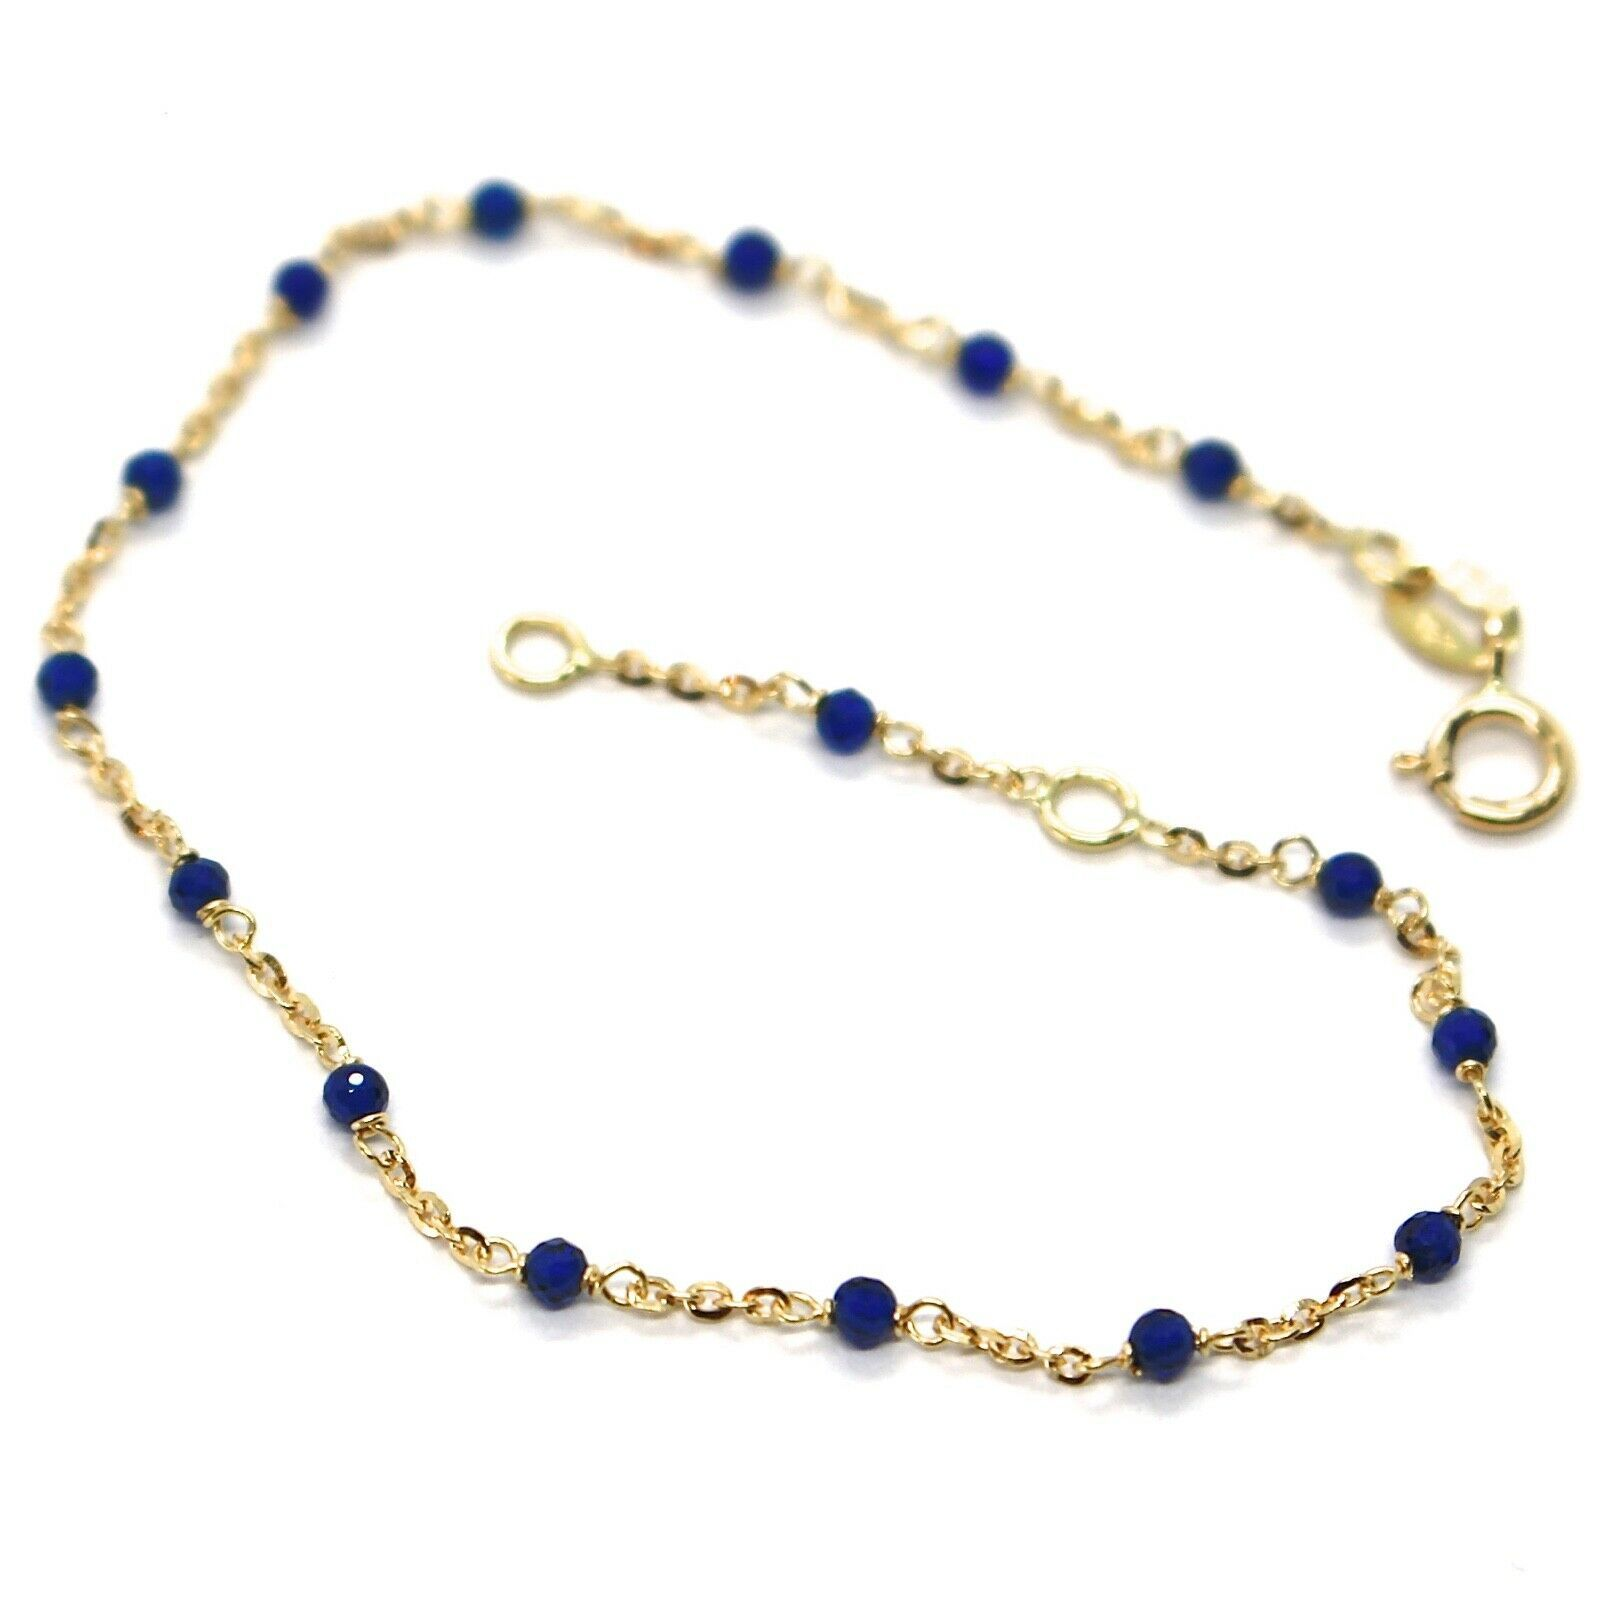 18K YELLOW GOLD BRACELET, BLUE FACETED CUBIC ZIRCONIA, ROLO CHAIN, 6.9 INCHES